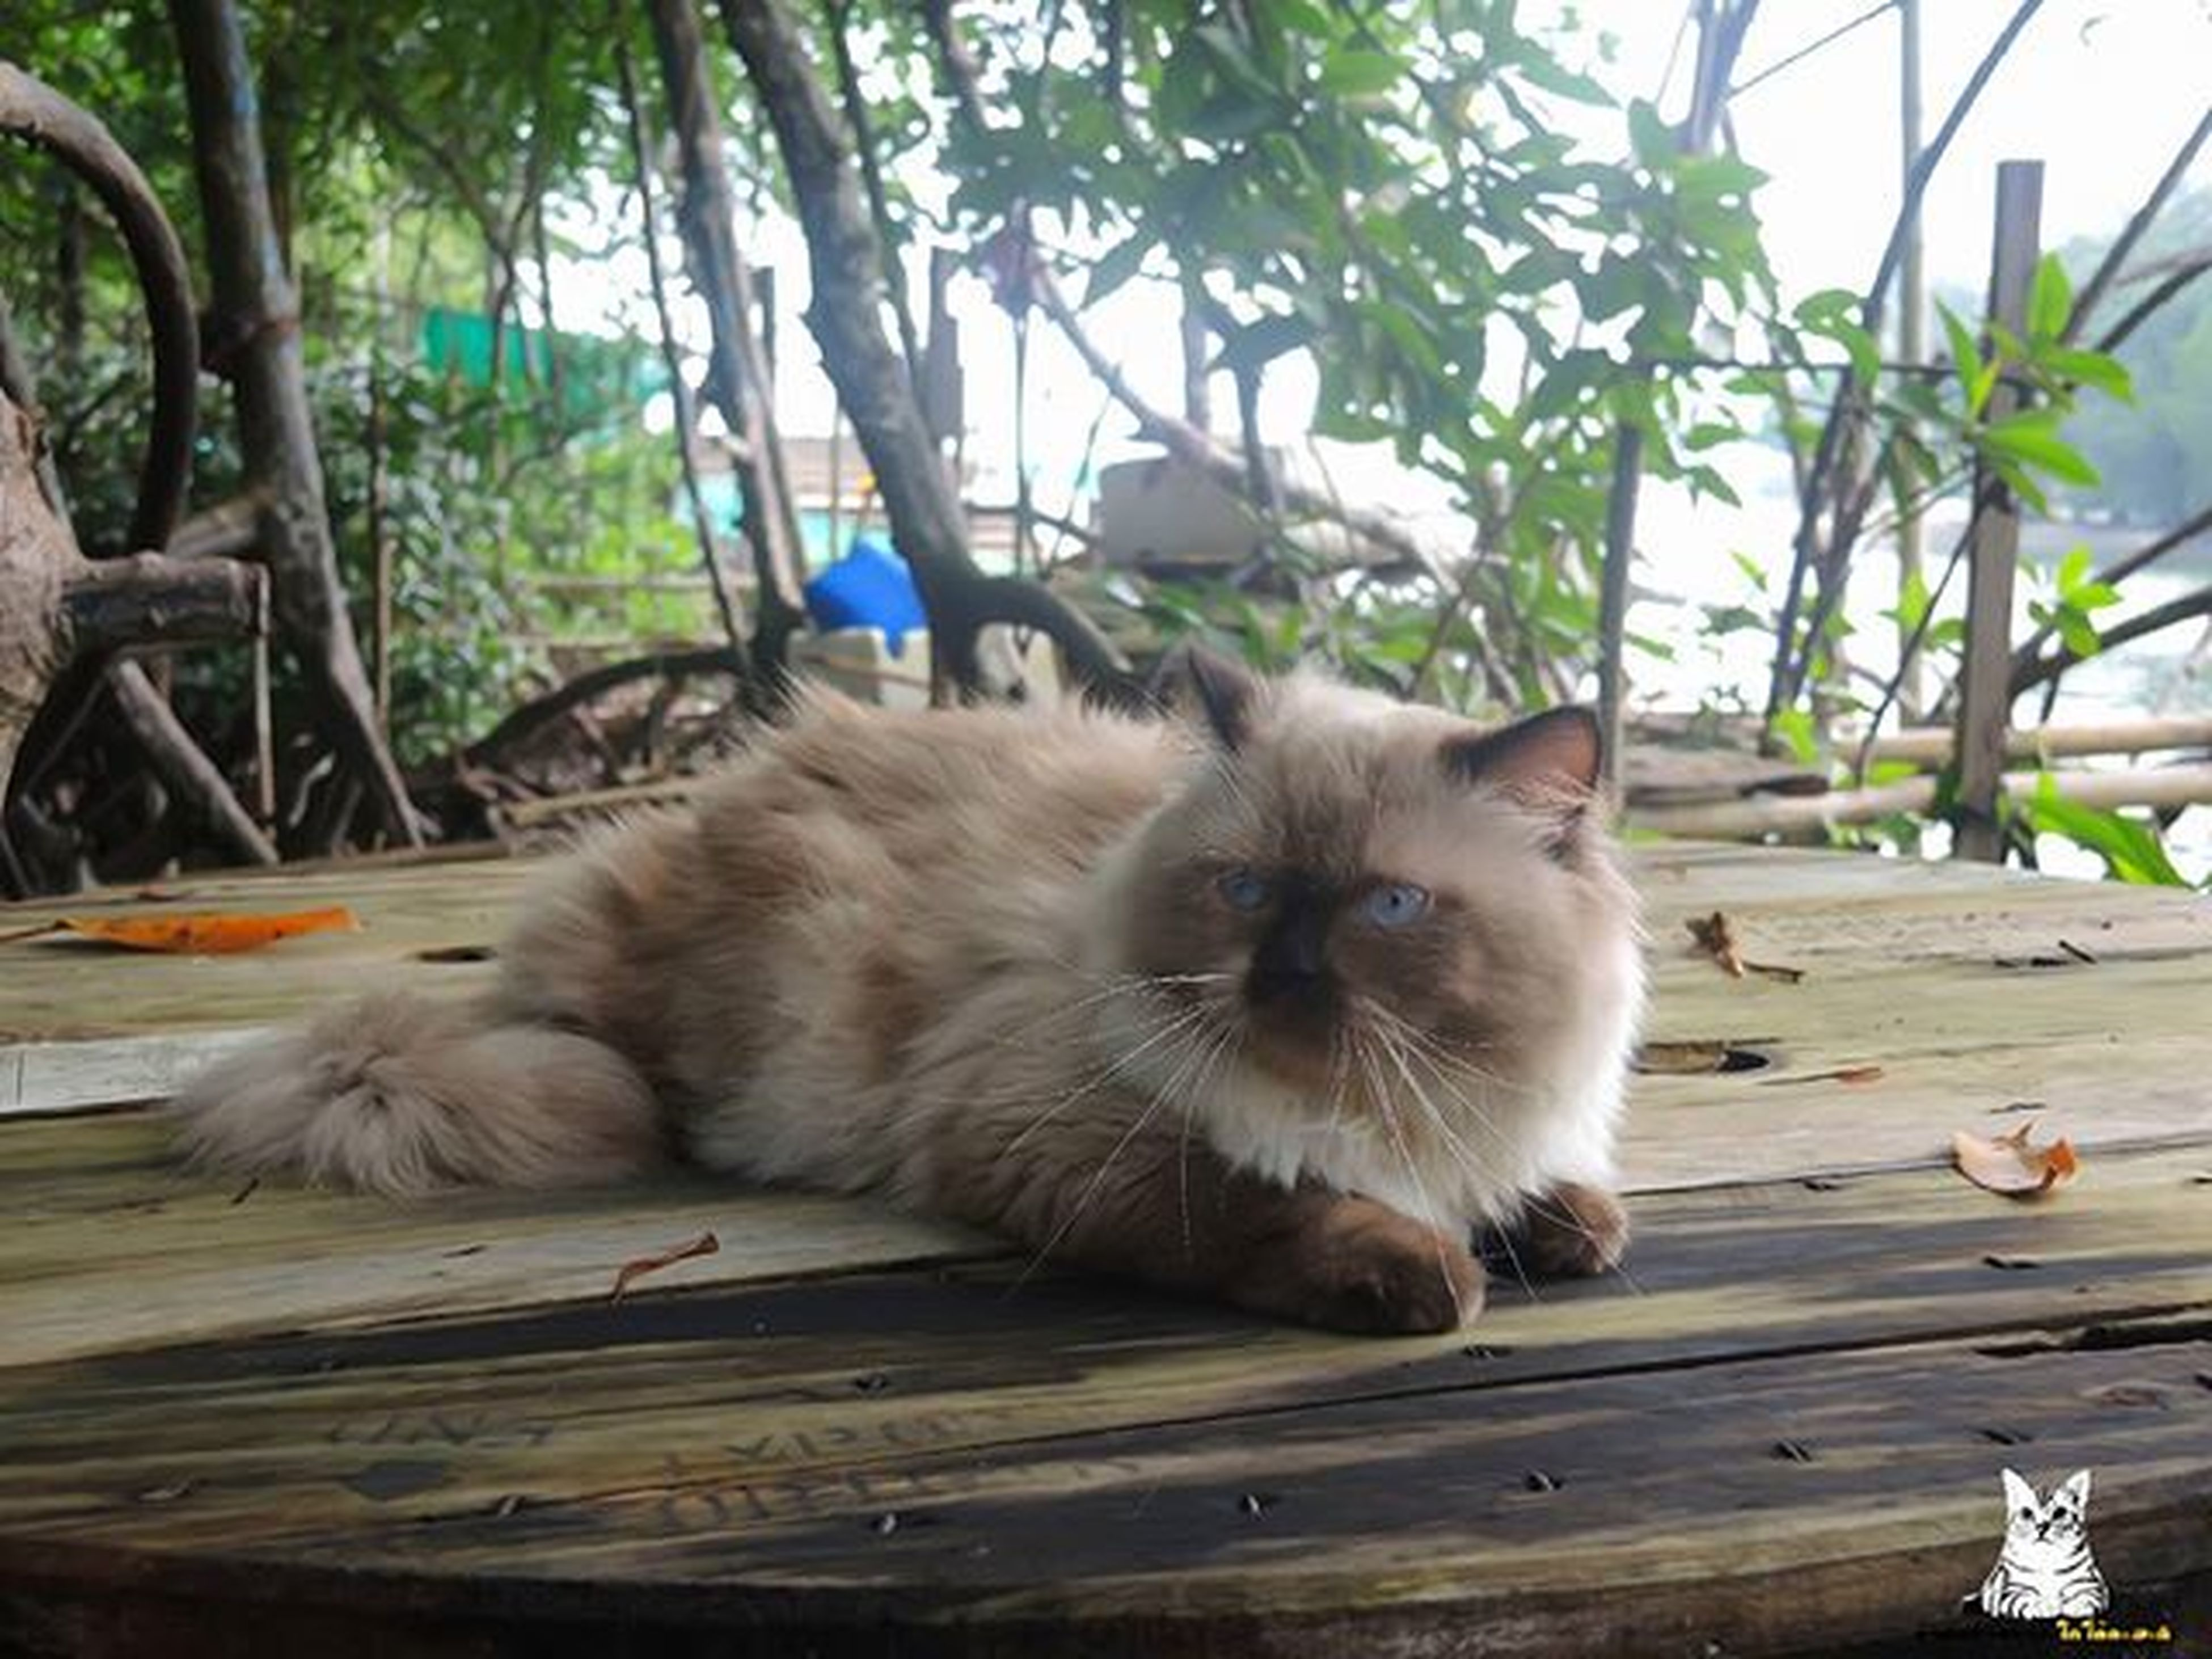 domestic cat, animal themes, cat, mammal, feline, one animal, domestic animals, pets, relaxation, whisker, sitting, wood - material, tree, portrait, resting, plant, close-up, looking at camera, outdoors, day